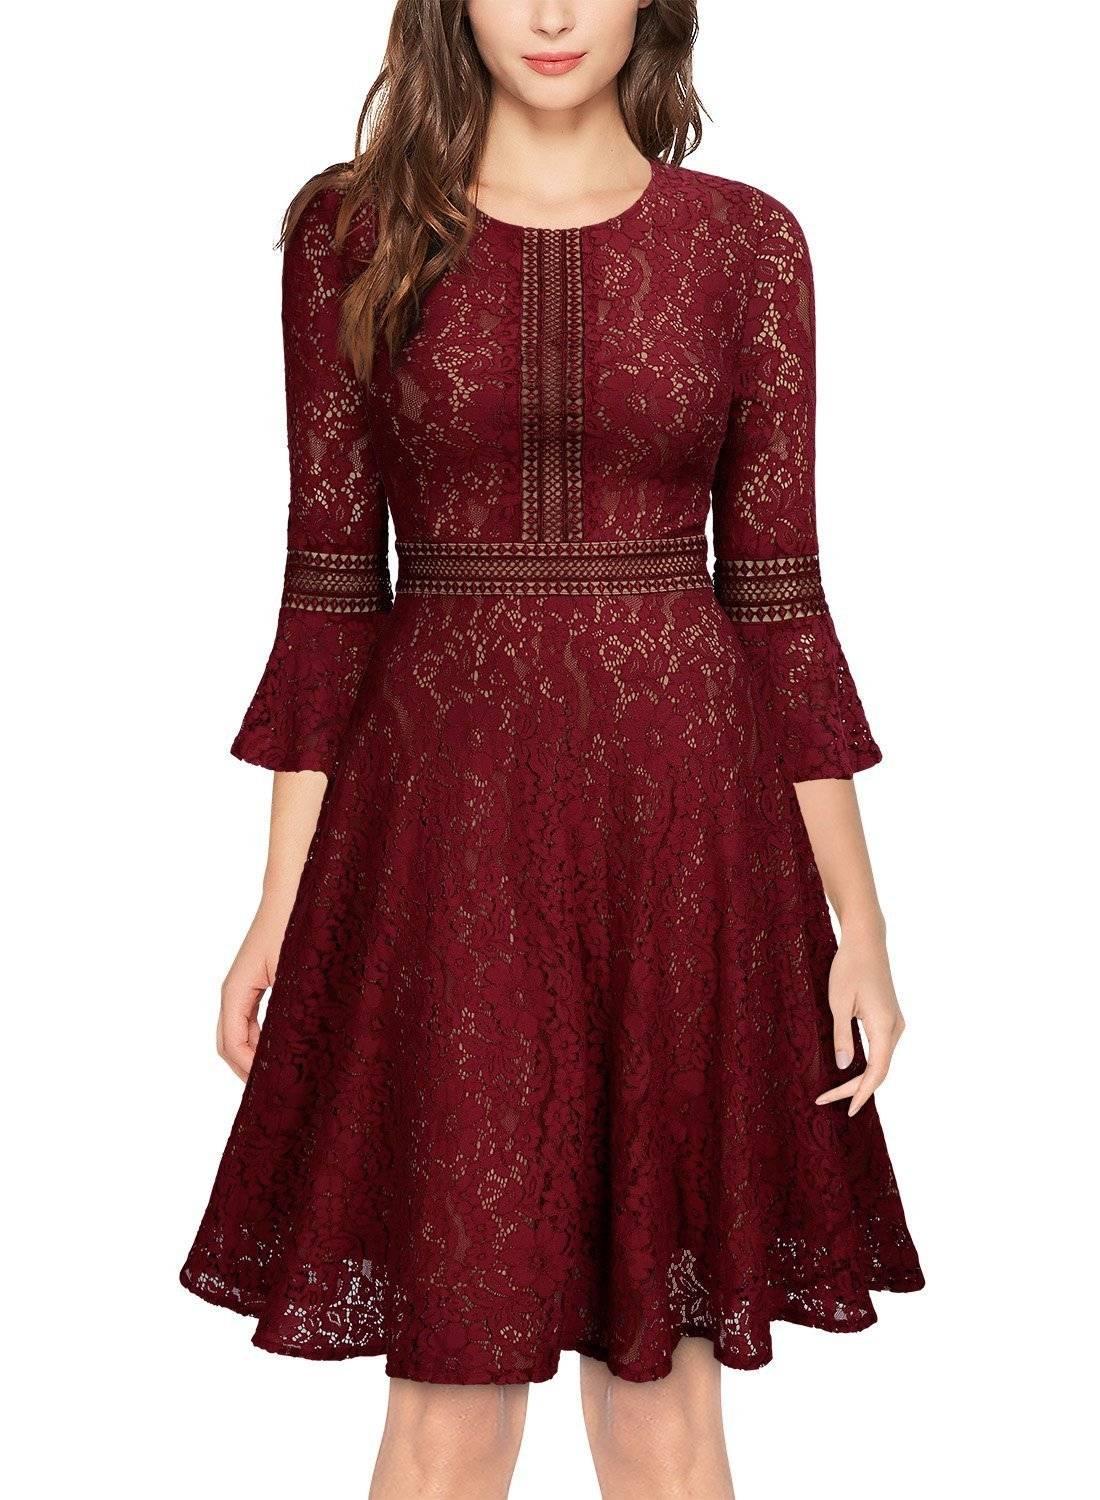 Glamulice Women's Valentines Day Vintage Floral Lace Dress Swing Cocktail A-Line Party Dresses (XX-Large, Wine Red)